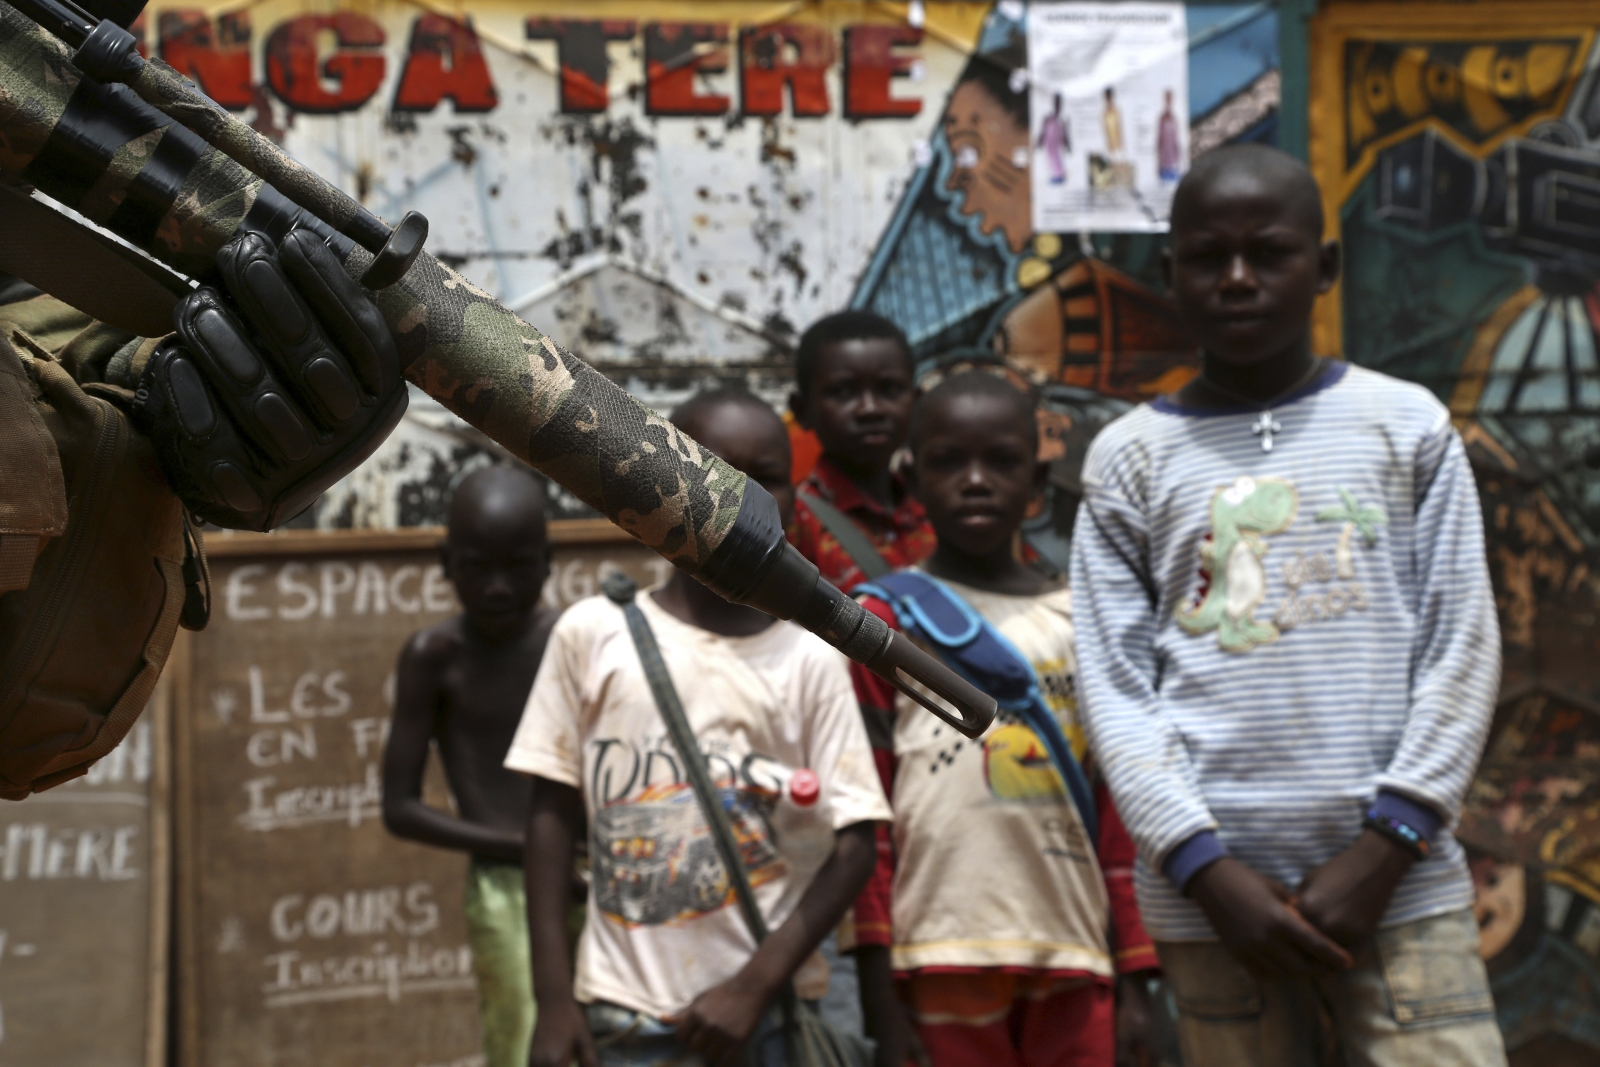 Central African Republic: French Peacekeepers forced girls ...